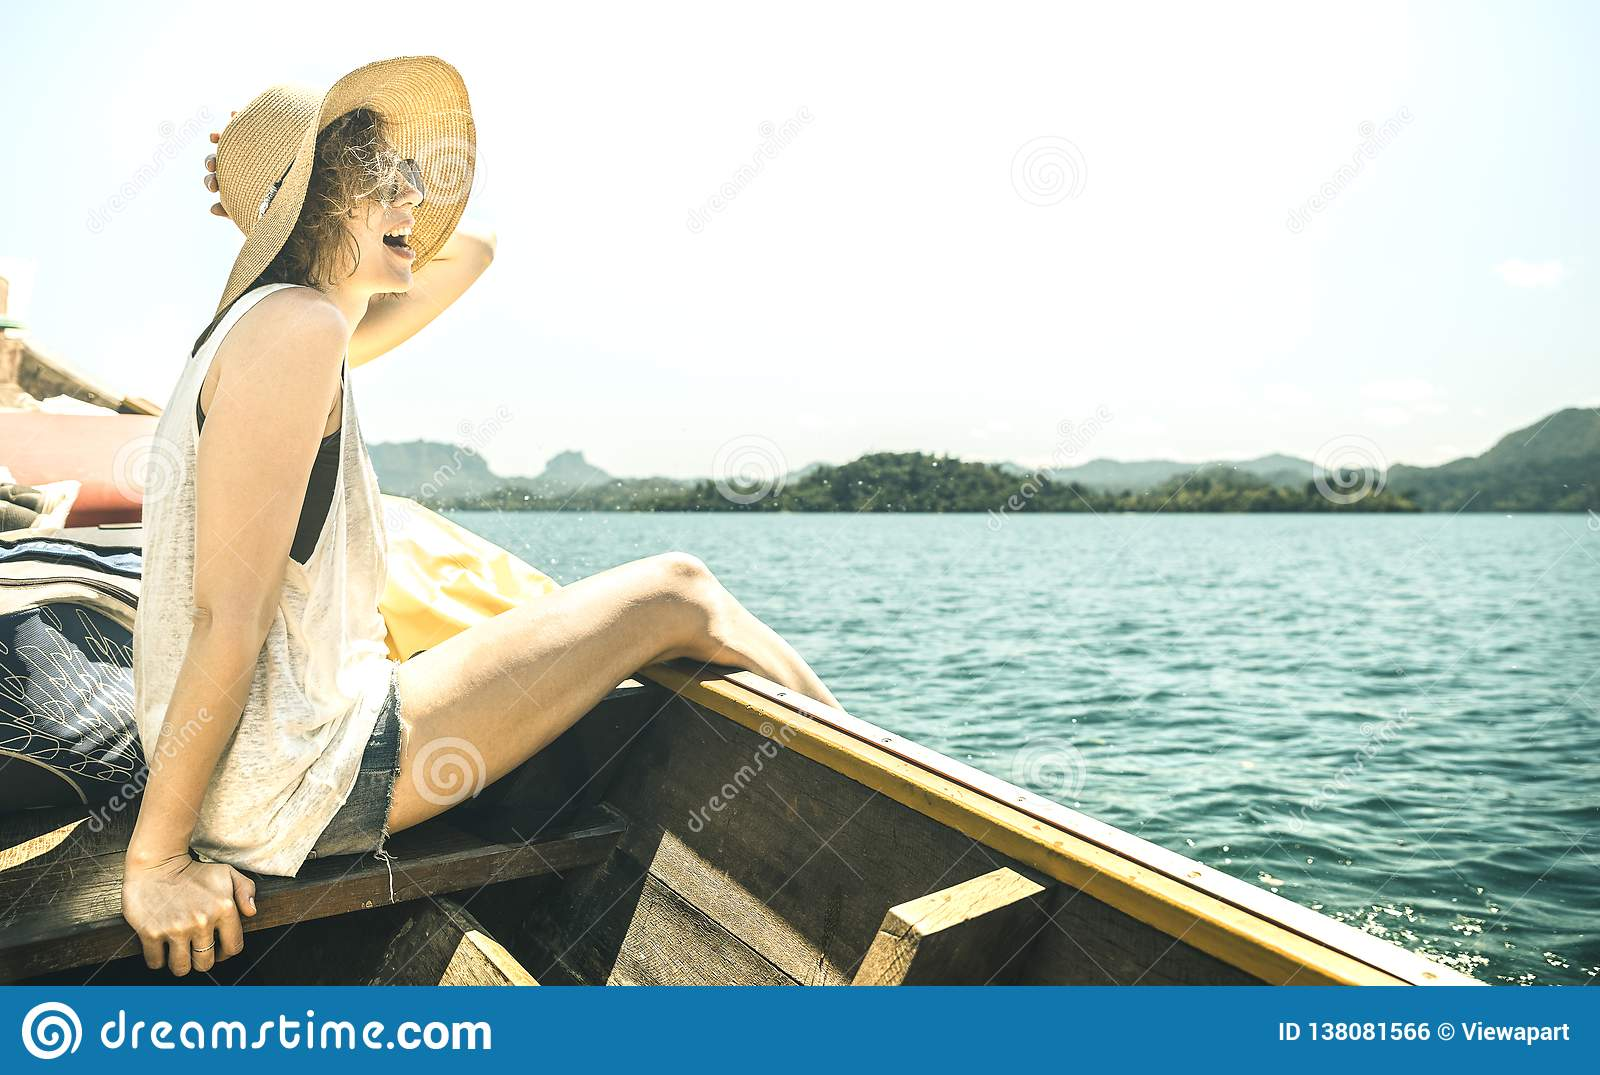 Young woman solo traveler at boat trip excursion at lake - Wanderlust travel concept with adventure girl tourist wanderer on